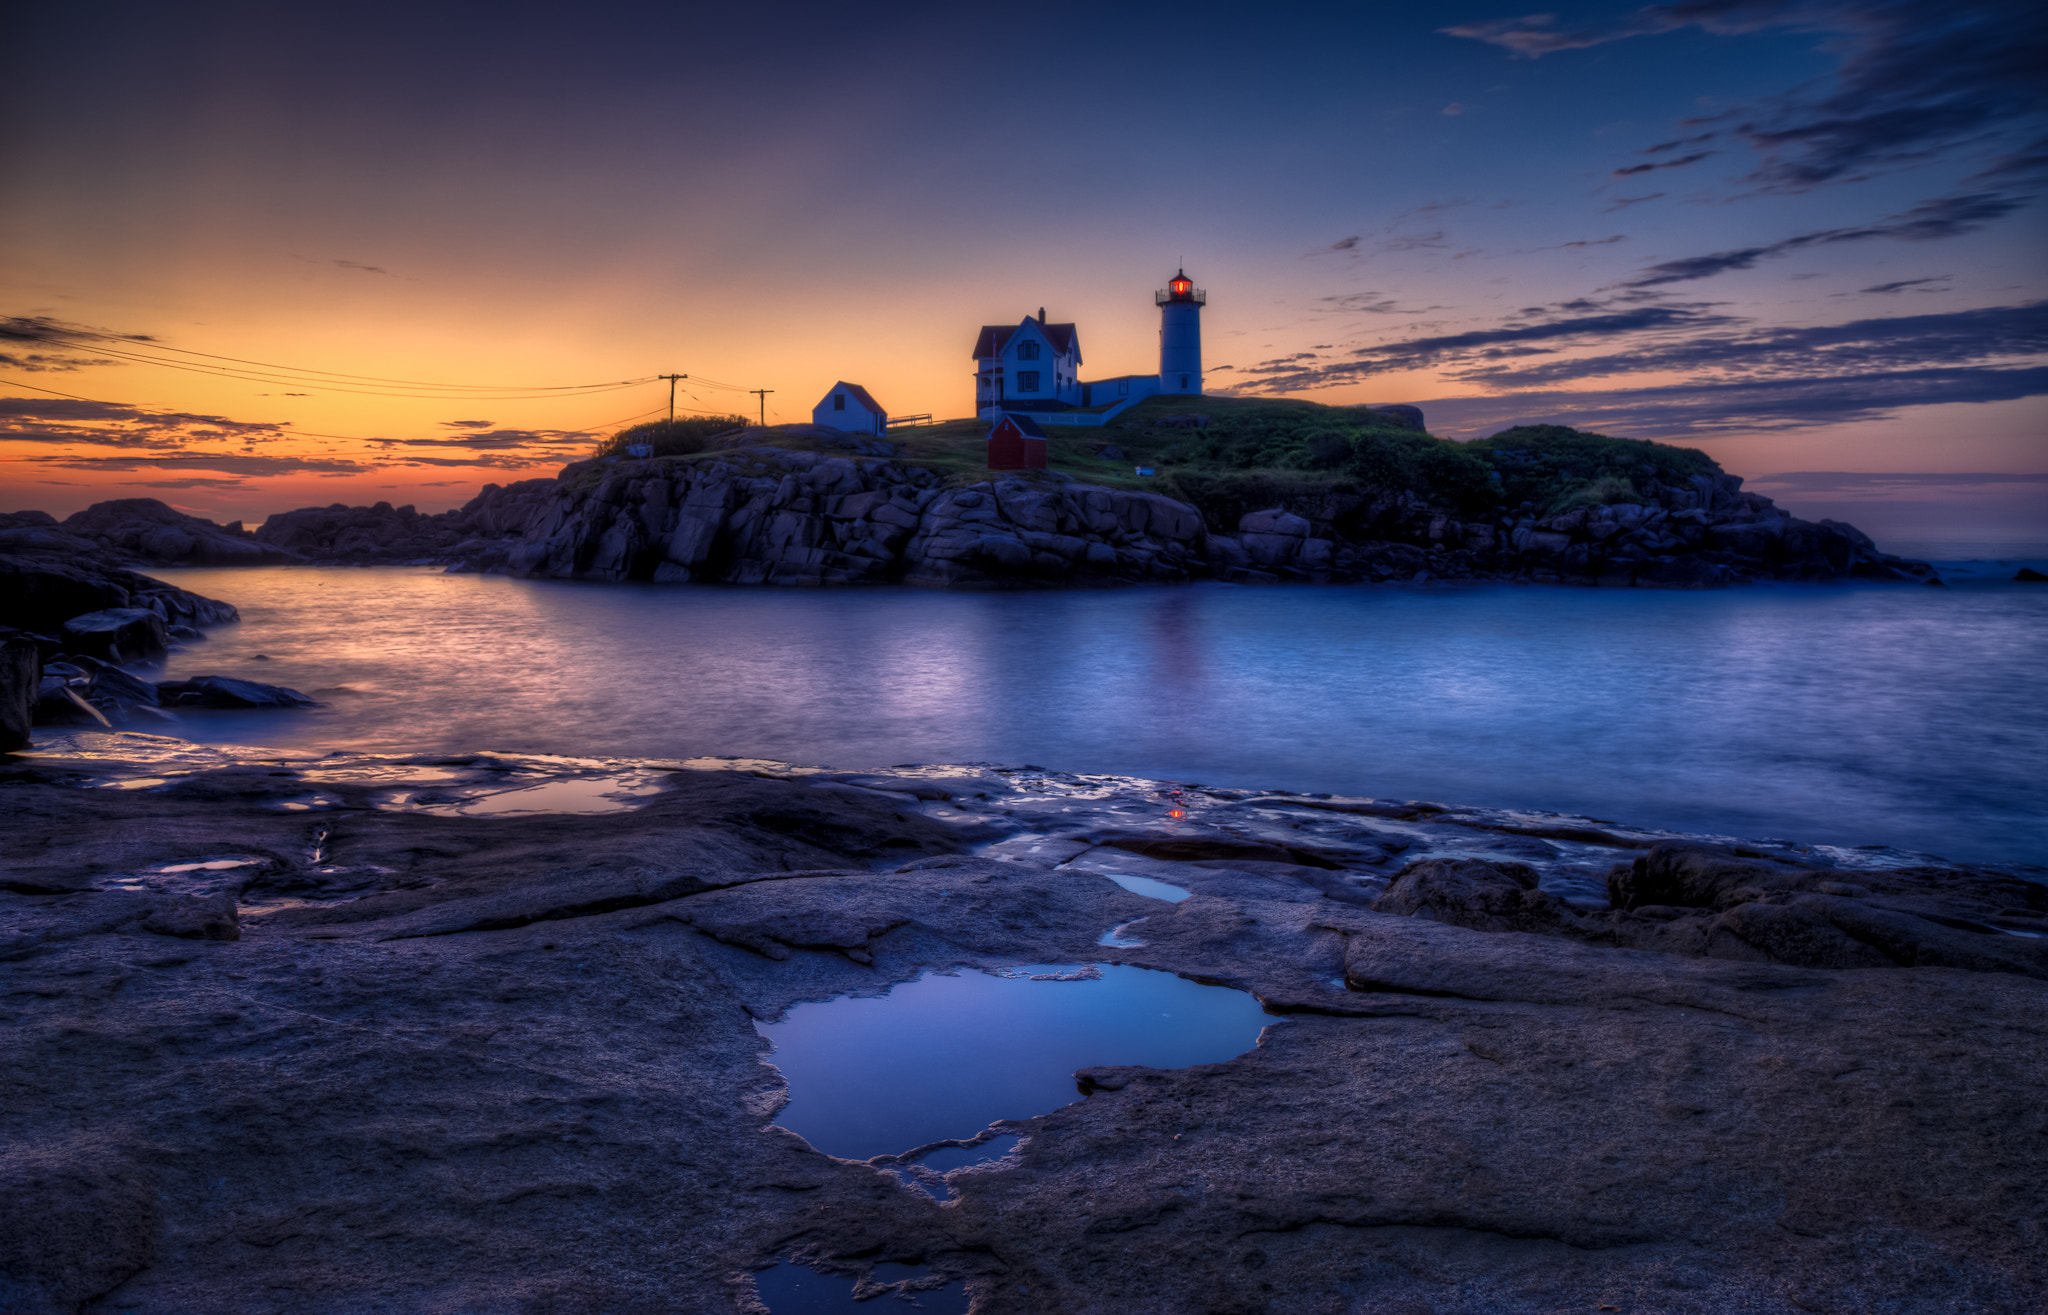 Photograph Nubble Lighthouse by Dave Wright on 500px